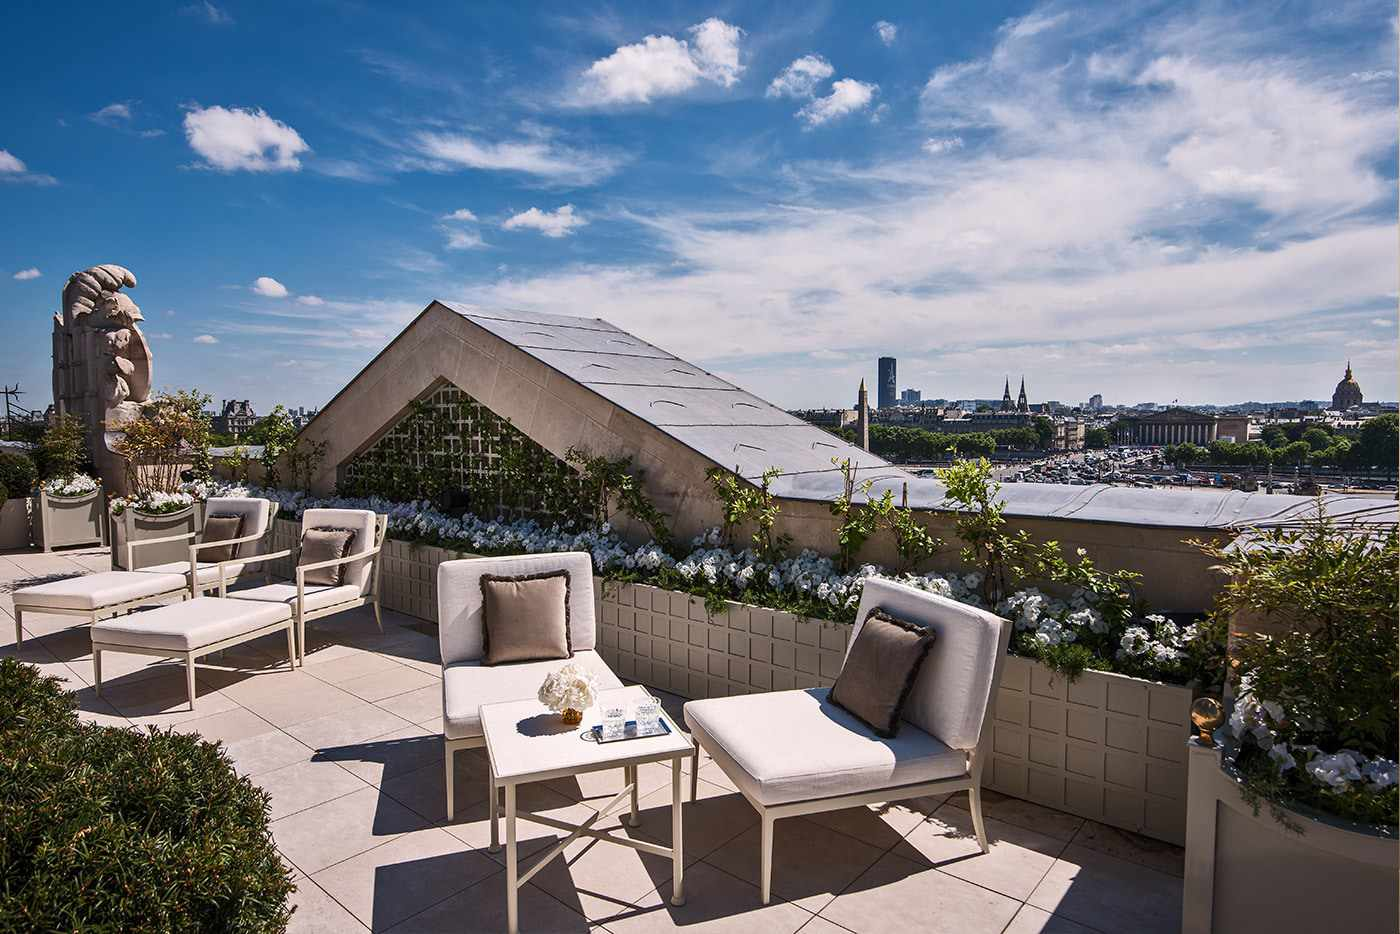 Rooftop of Rosewood Hotel Paris with lounge chairs, shrubbery and white flowers and a view of the city